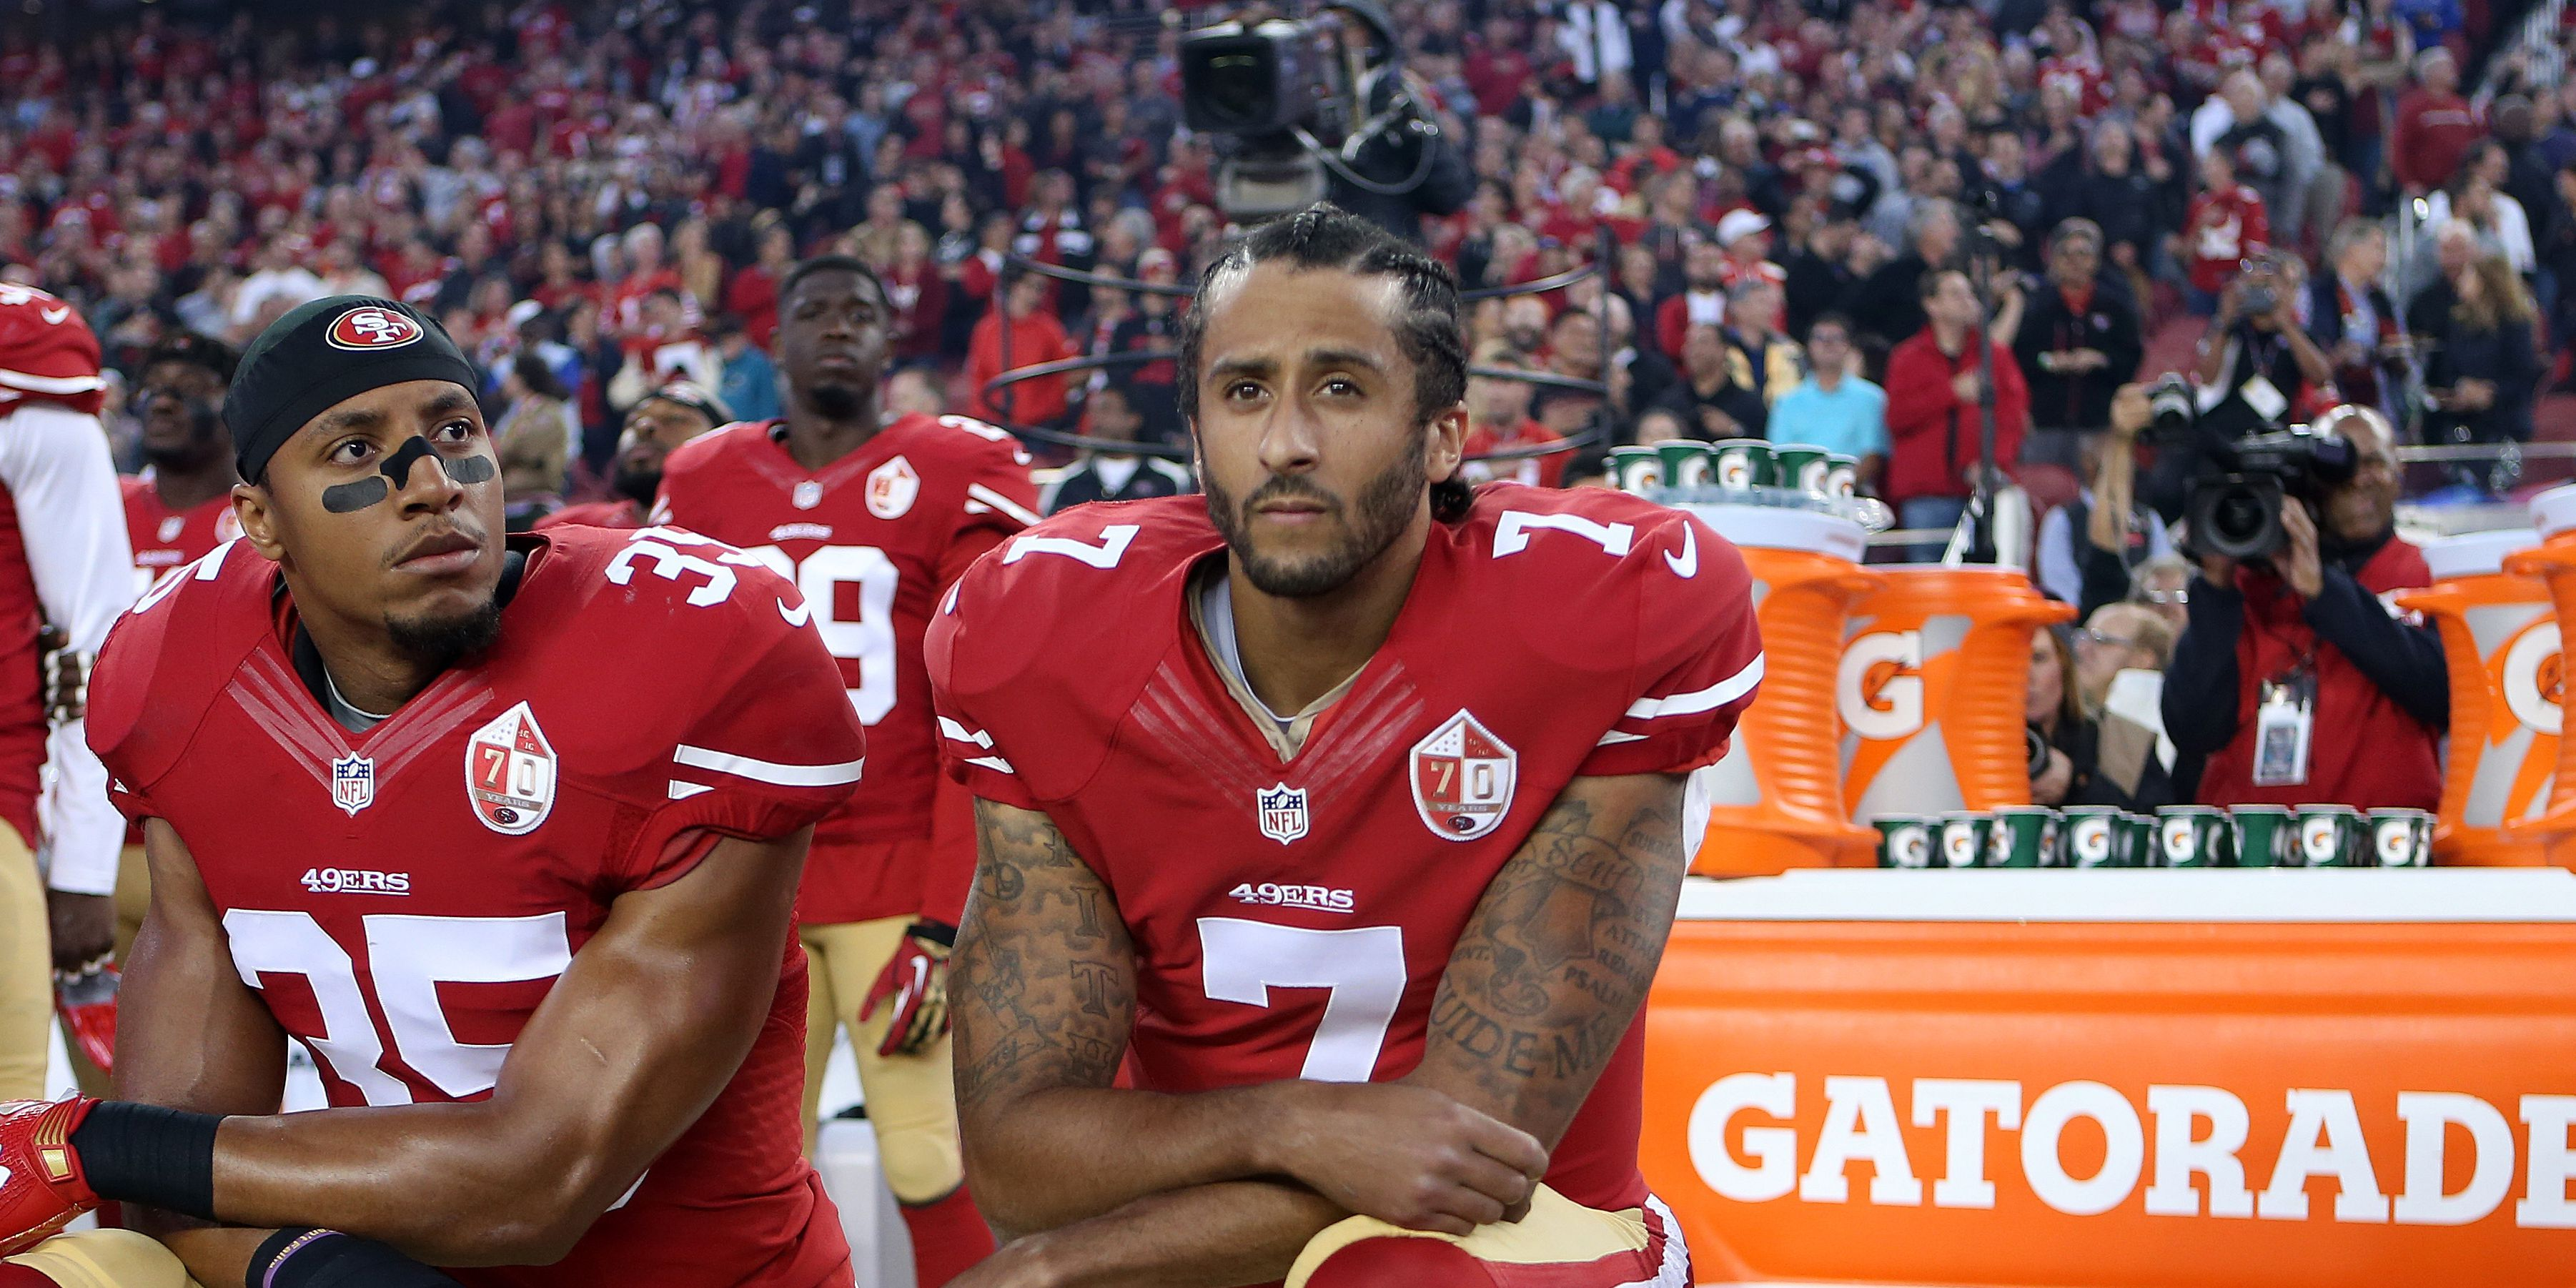 Kaepernick mural removed before Super Bowl to be replaced